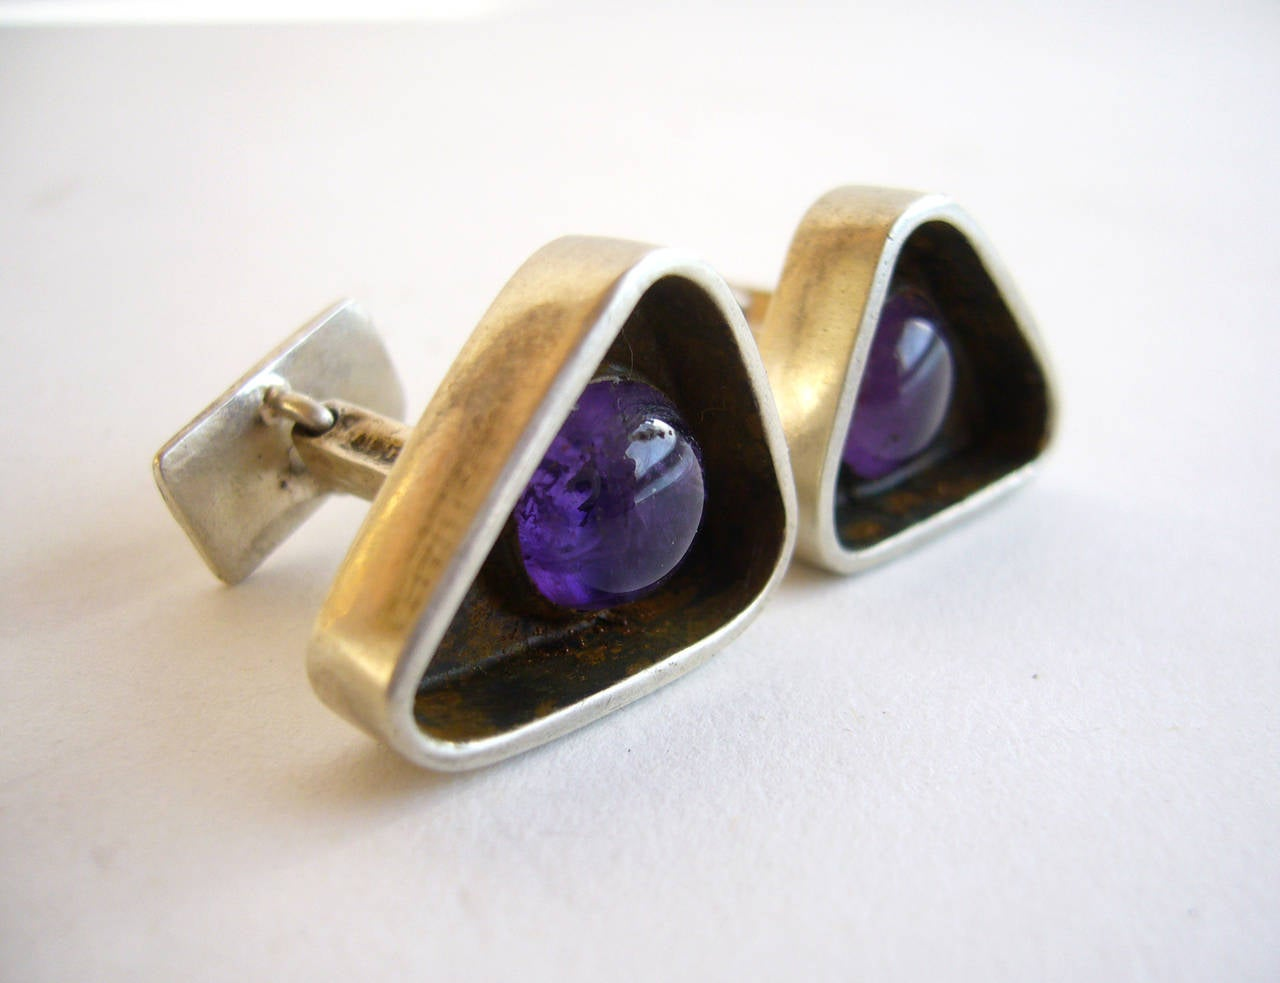 Amethyst and sterling cufflinks created by Ed Wiener of New York, circa 1950's.  Triangular shaped cufflinks measure 5/8